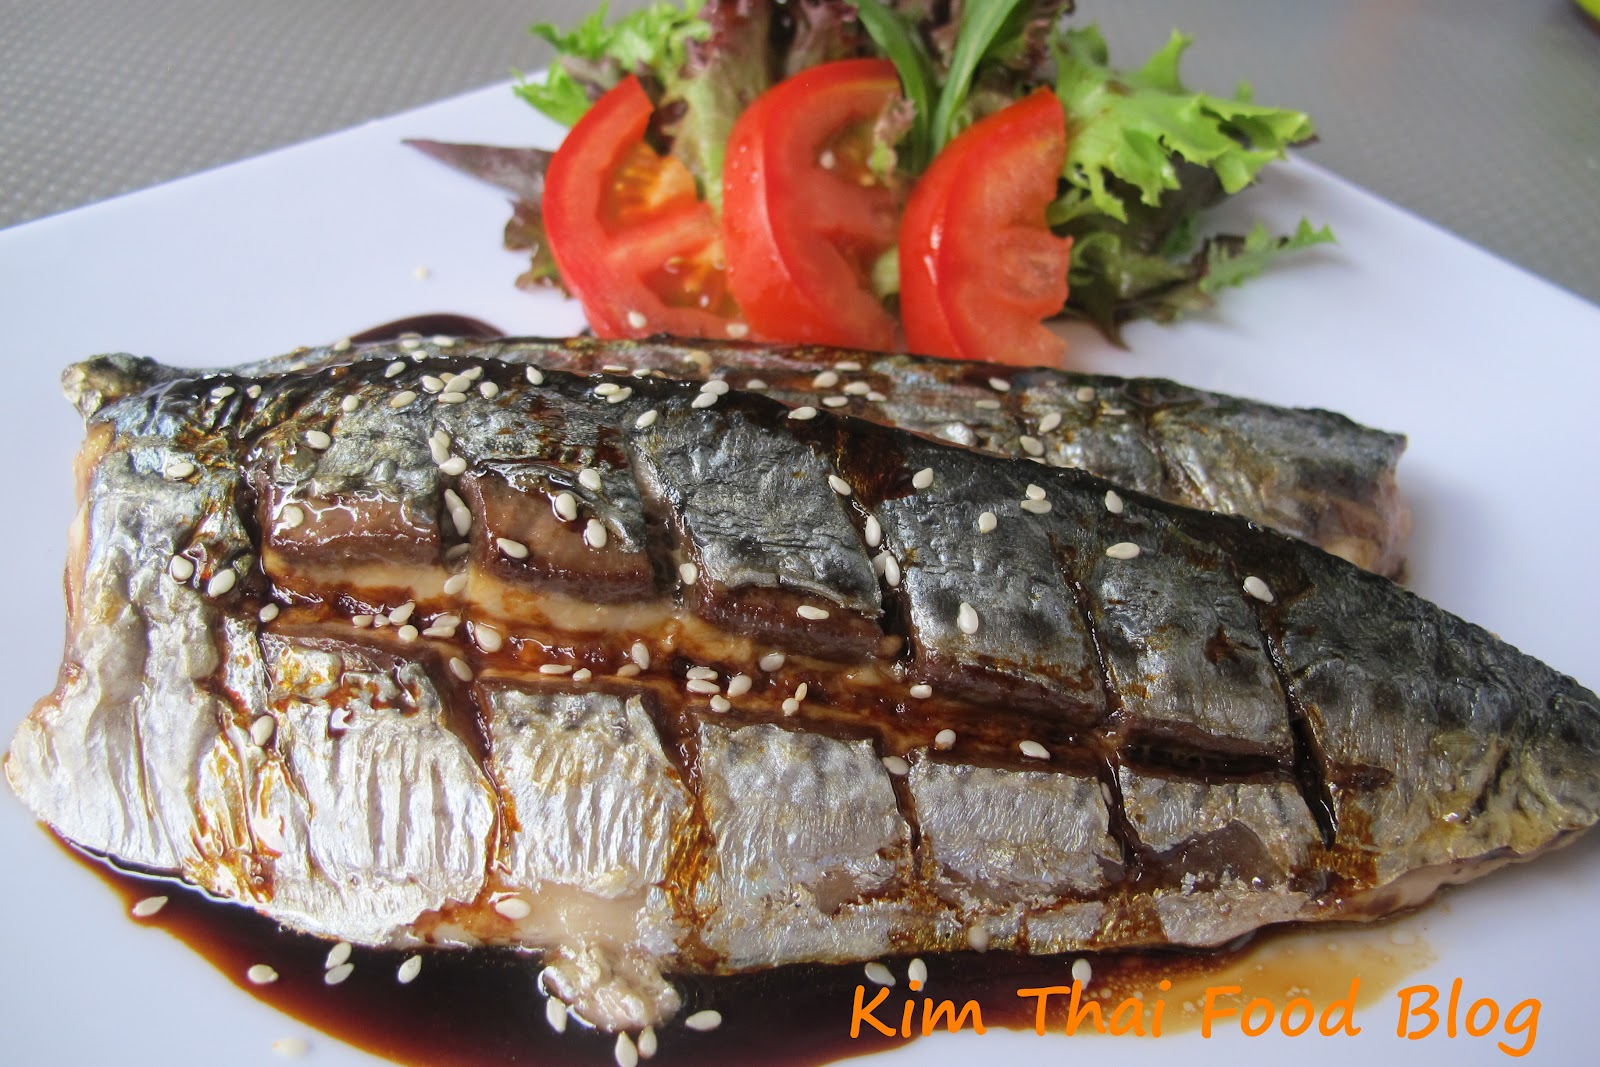 Kim thai food blog